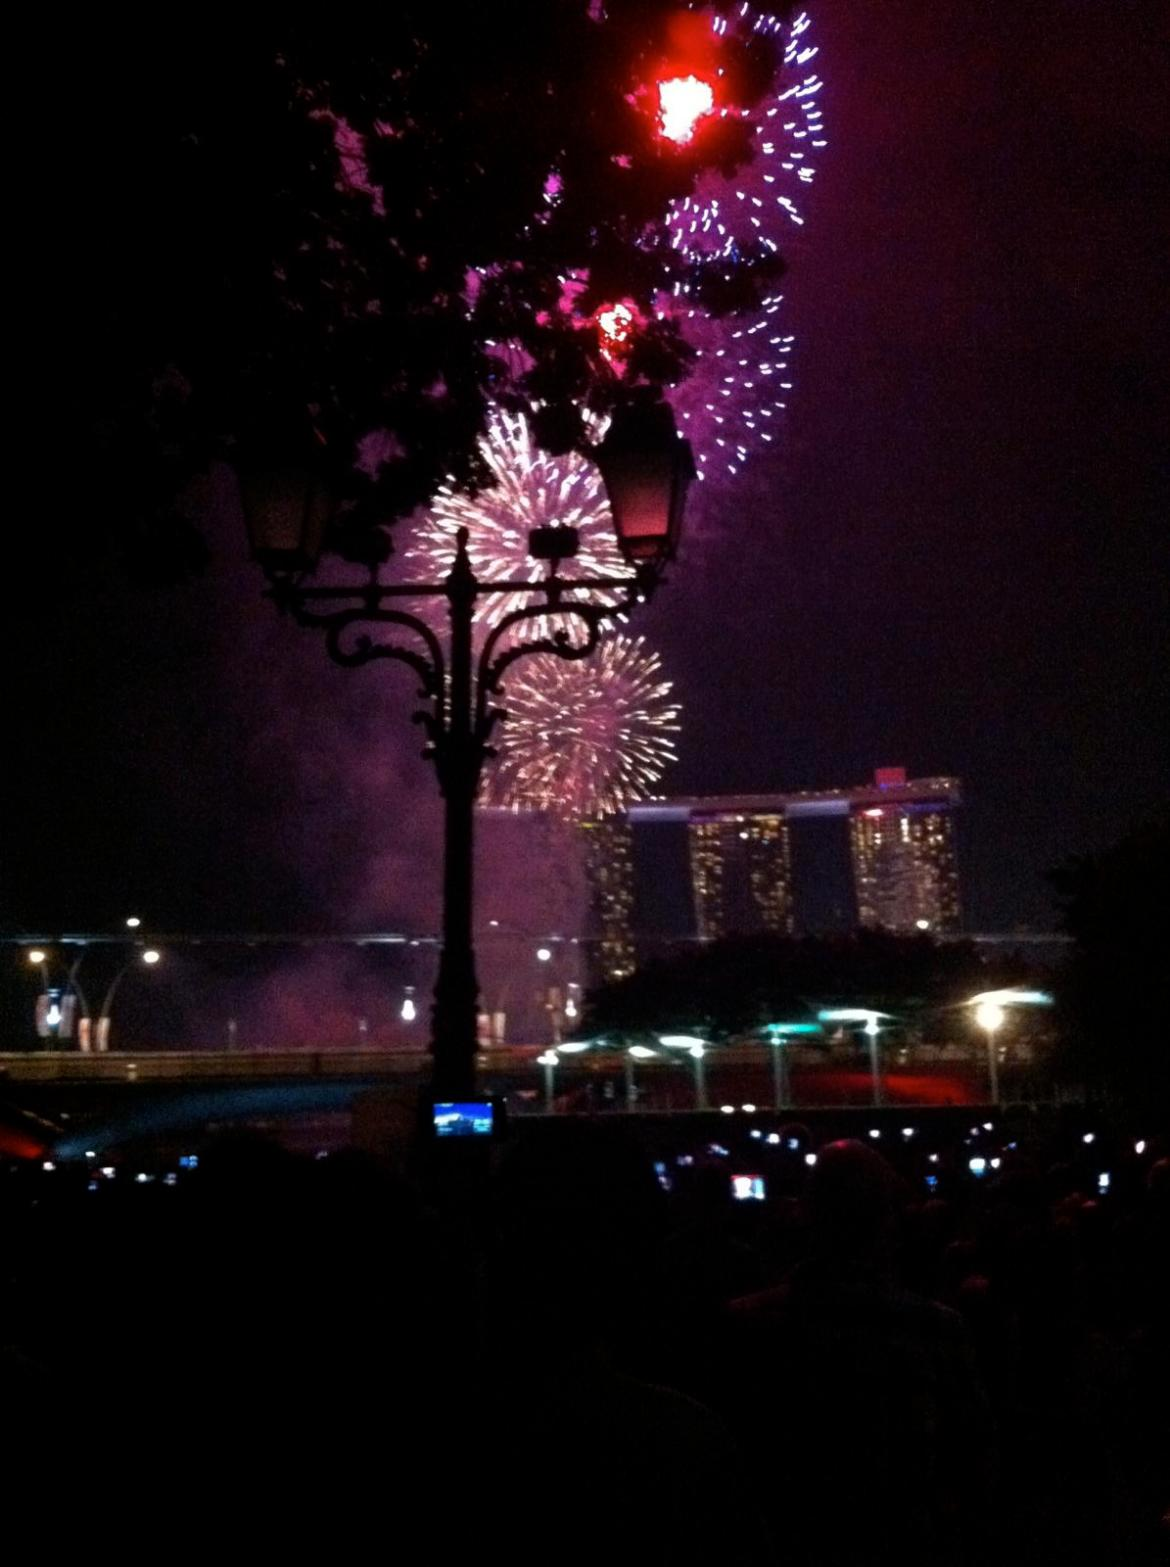 NDP 2011 - just the fireworks